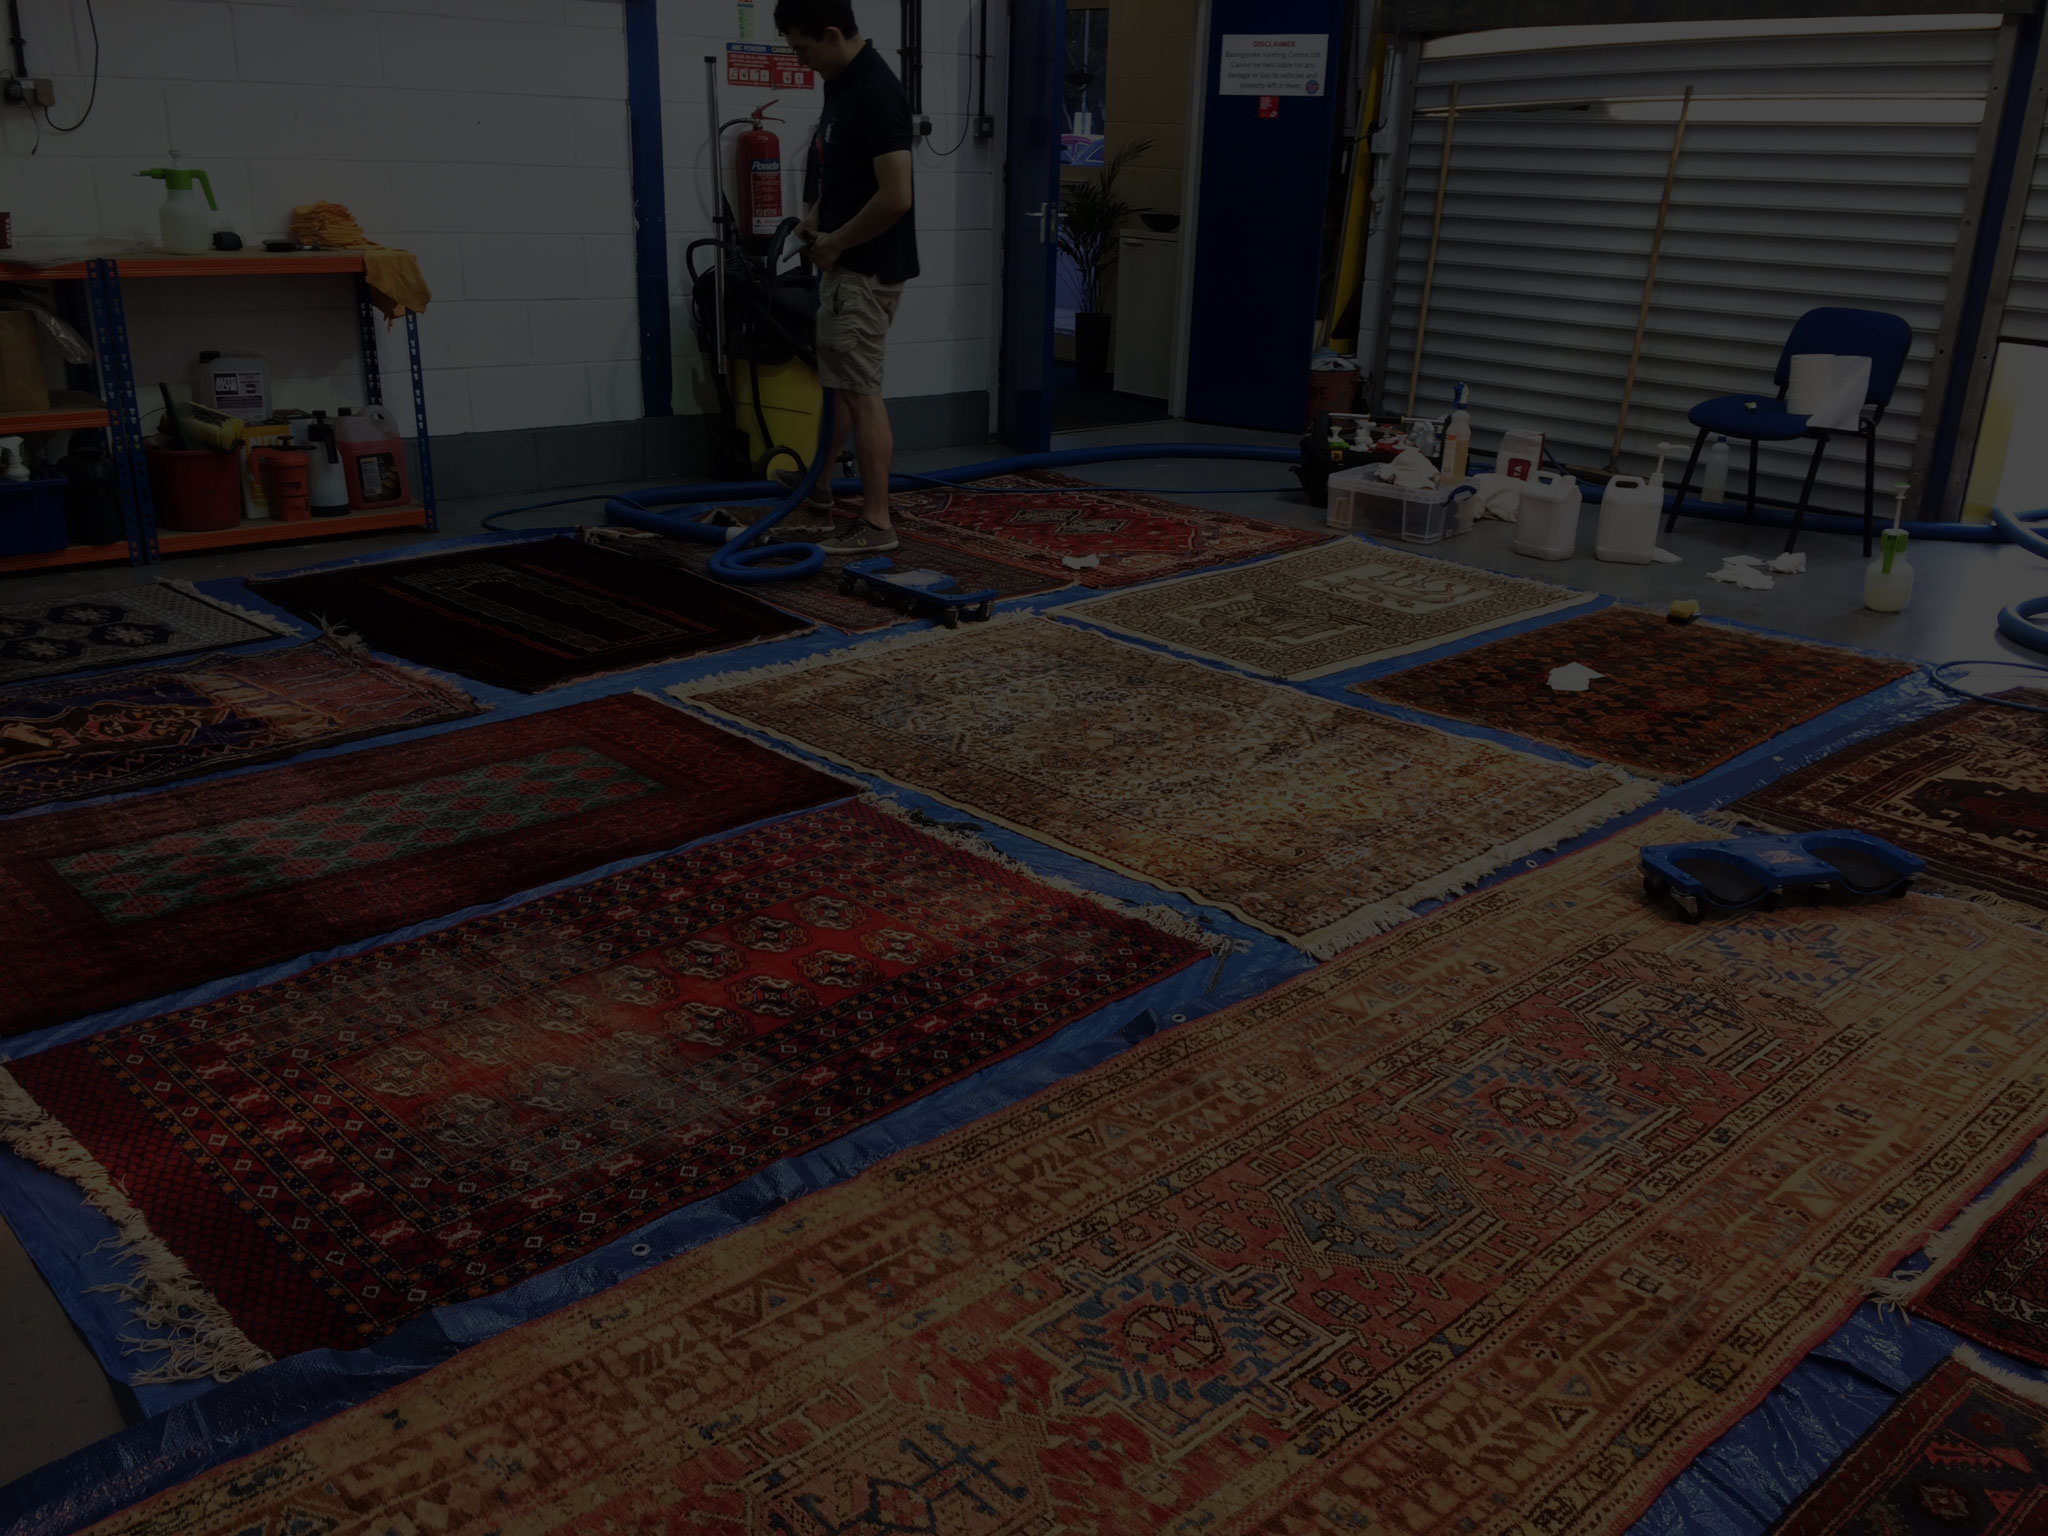 Rug Cleaning Naples Fl Best Rug Cleaners In Naples Fl